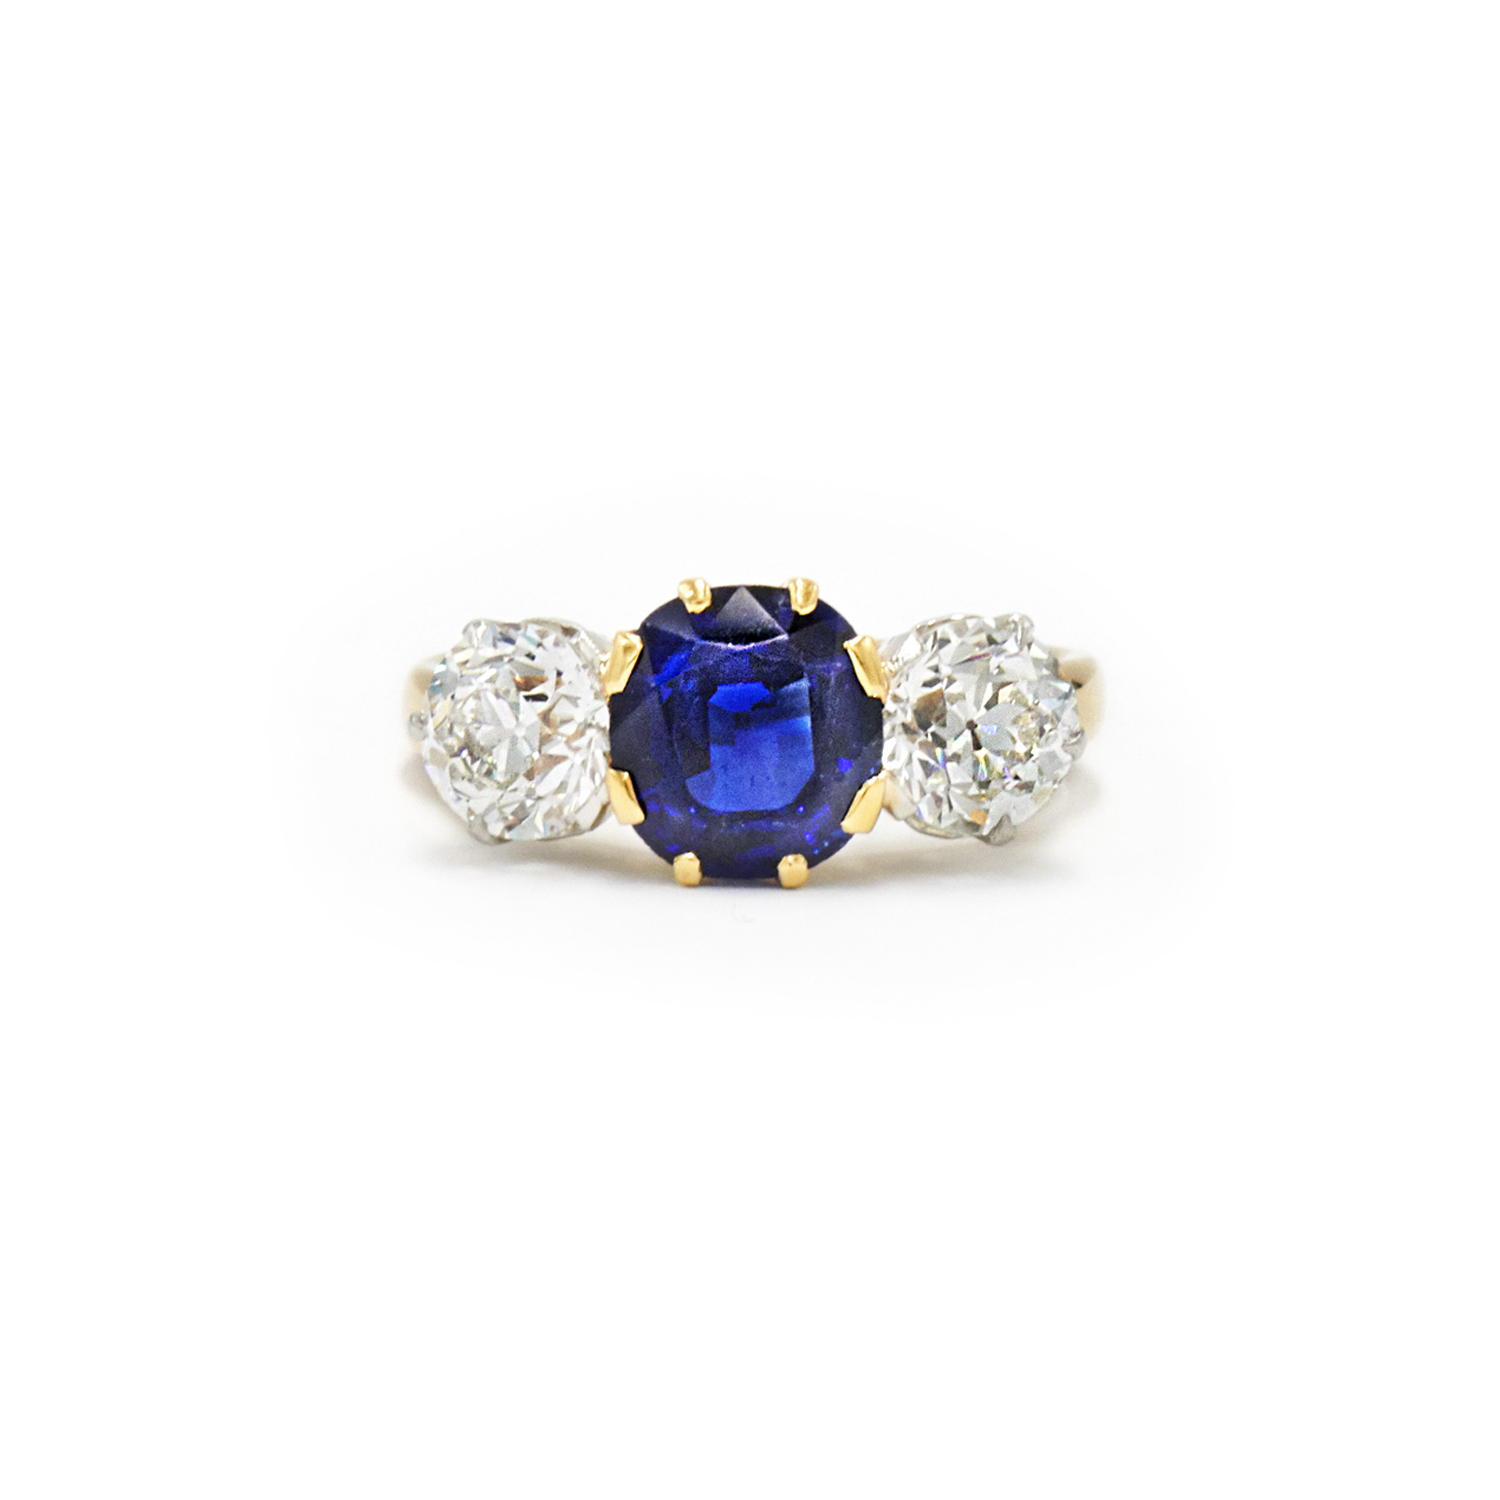 Antique Sapphire and Diamond 3 Stone Ring by Spaulding & Co. Style F-24656-FL-0-0